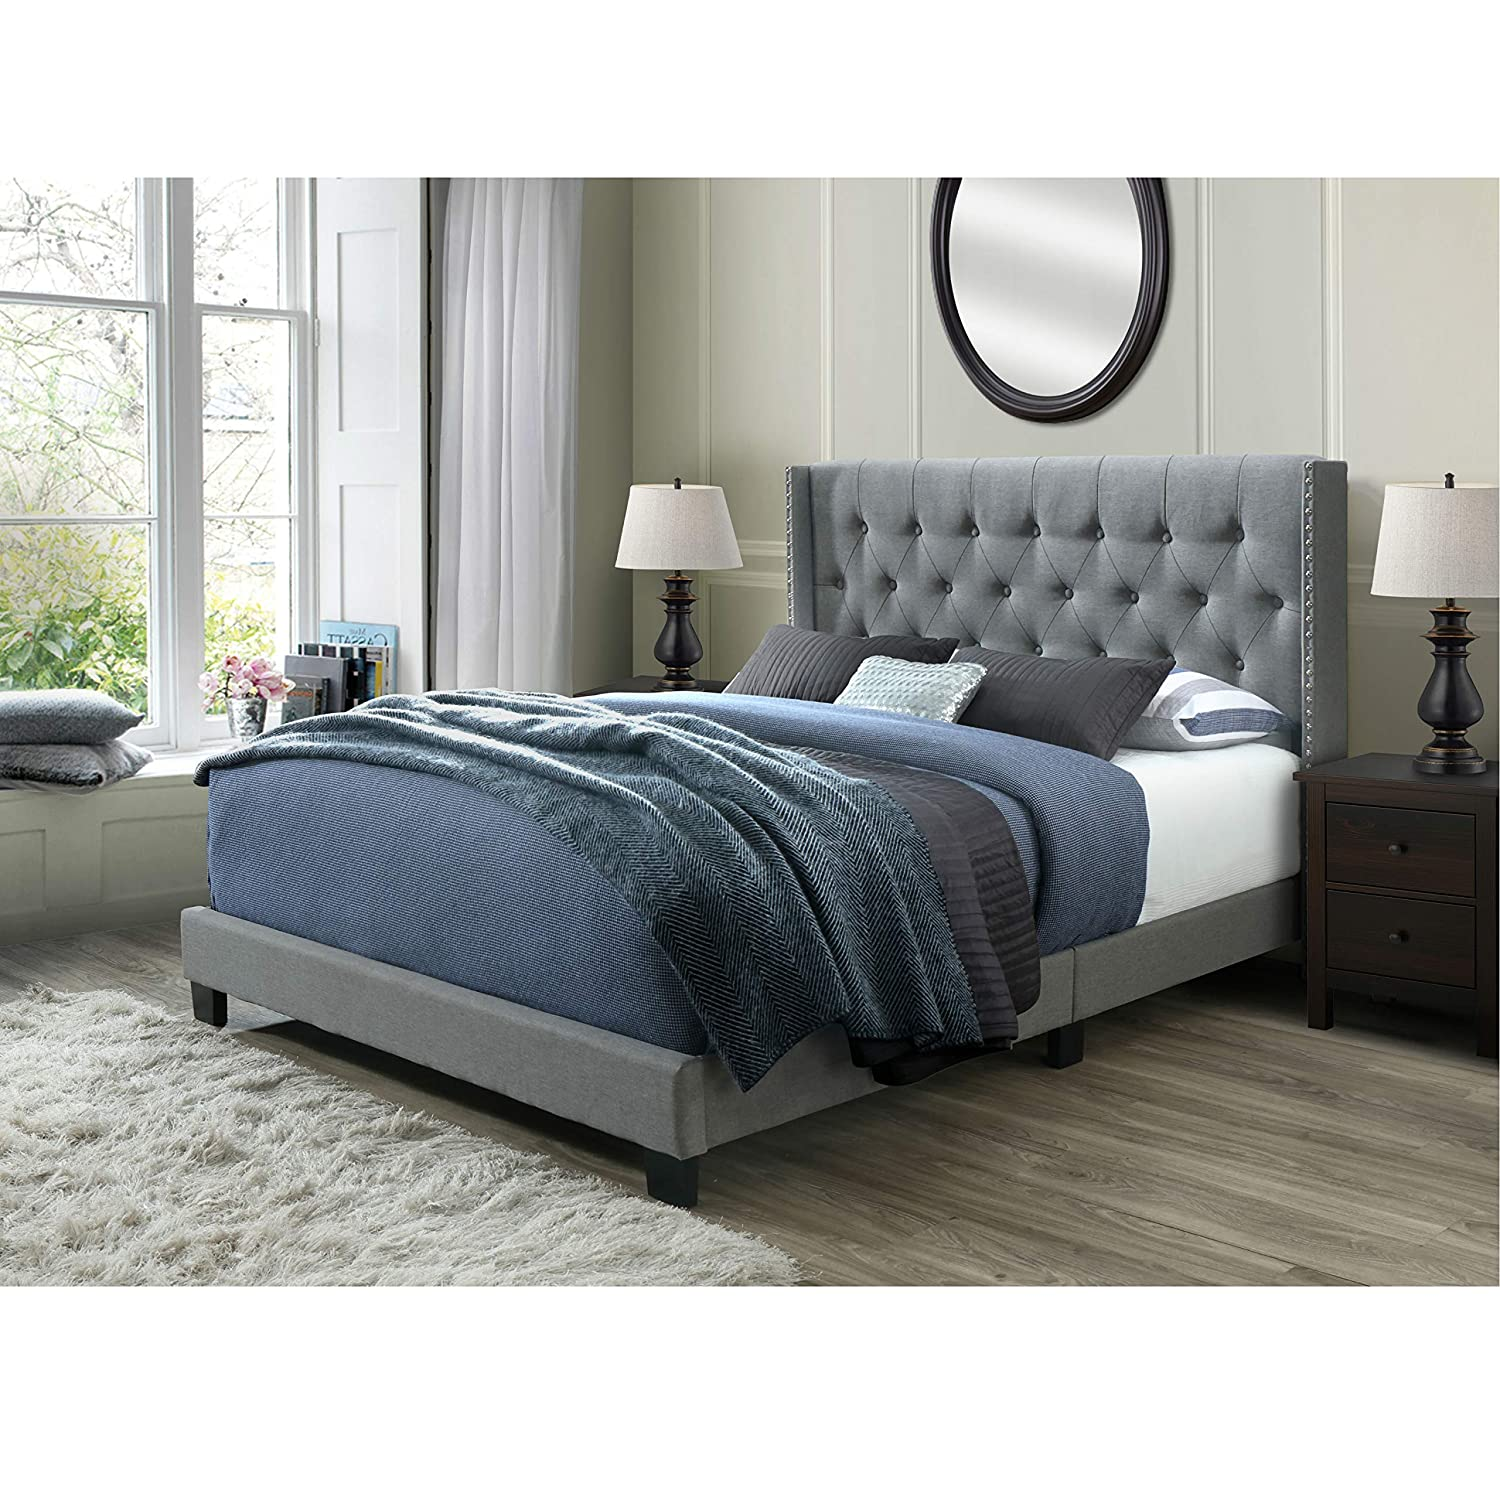 DG Casa Bardy Diamond Tufted Upholstered Wingback Panel Bed Frame, Queen Size in Gray Fabric